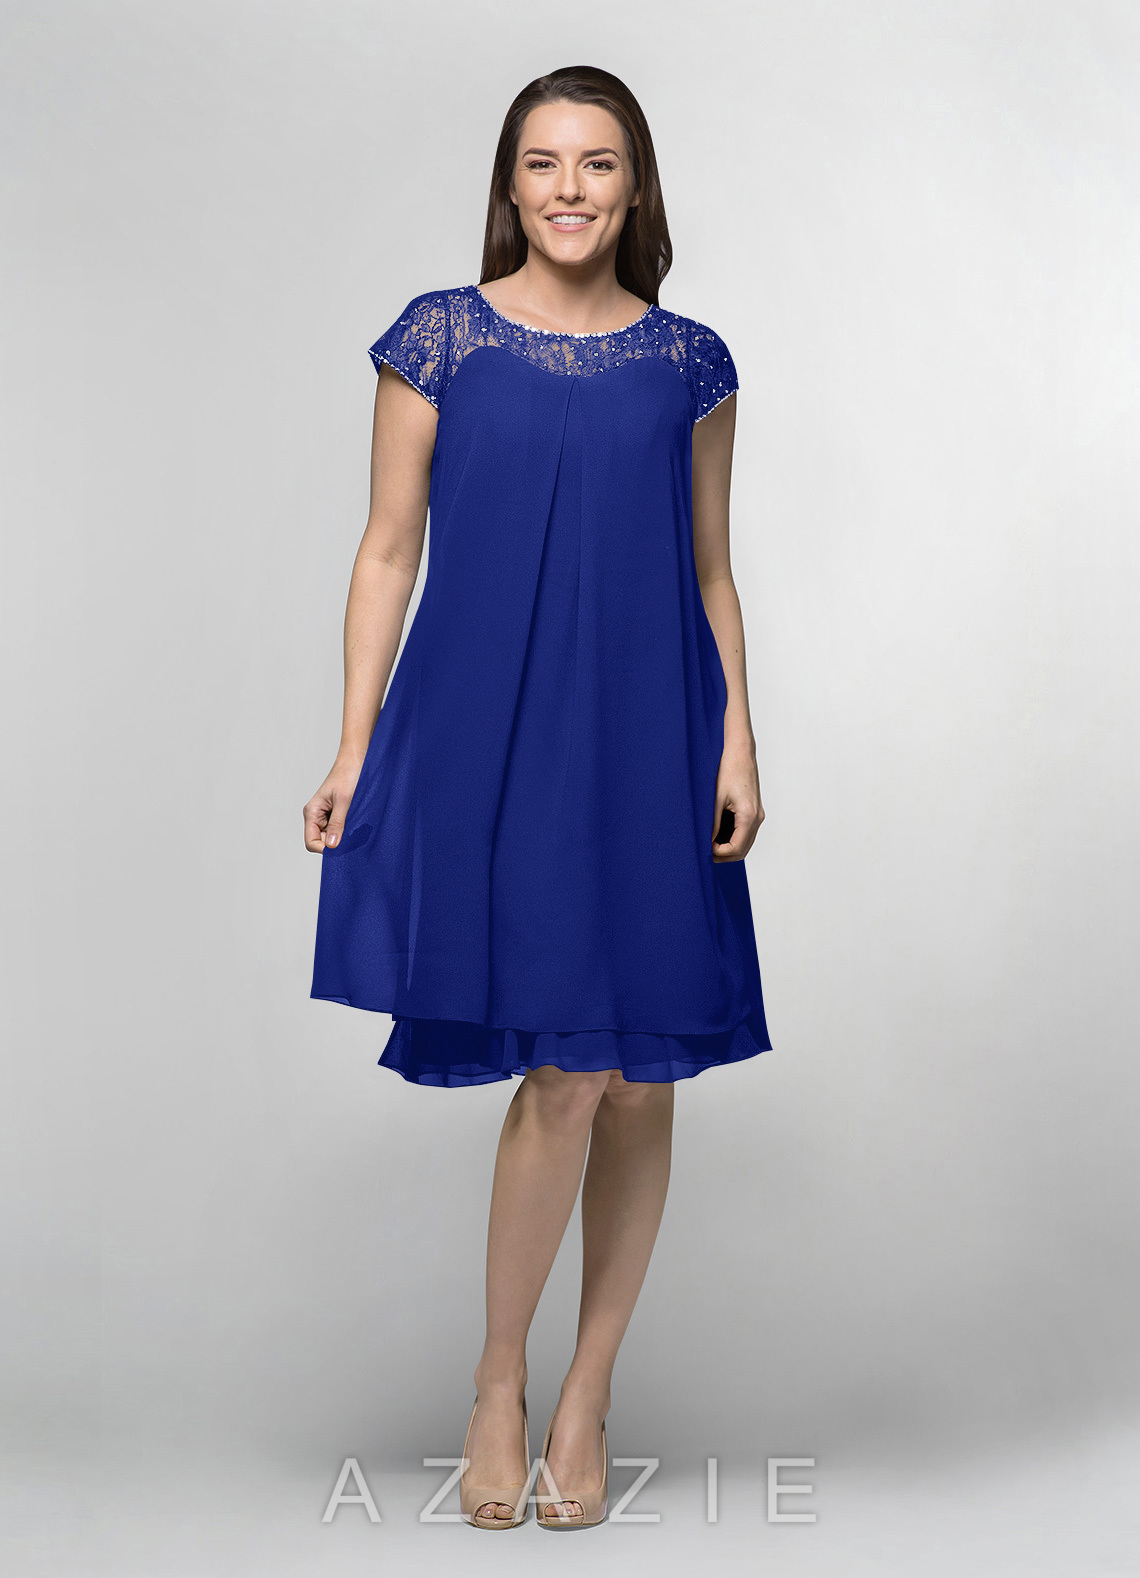 ad5260ca561 Azazie Tess MBD Mother Of The Bride Dress - Royal Blue